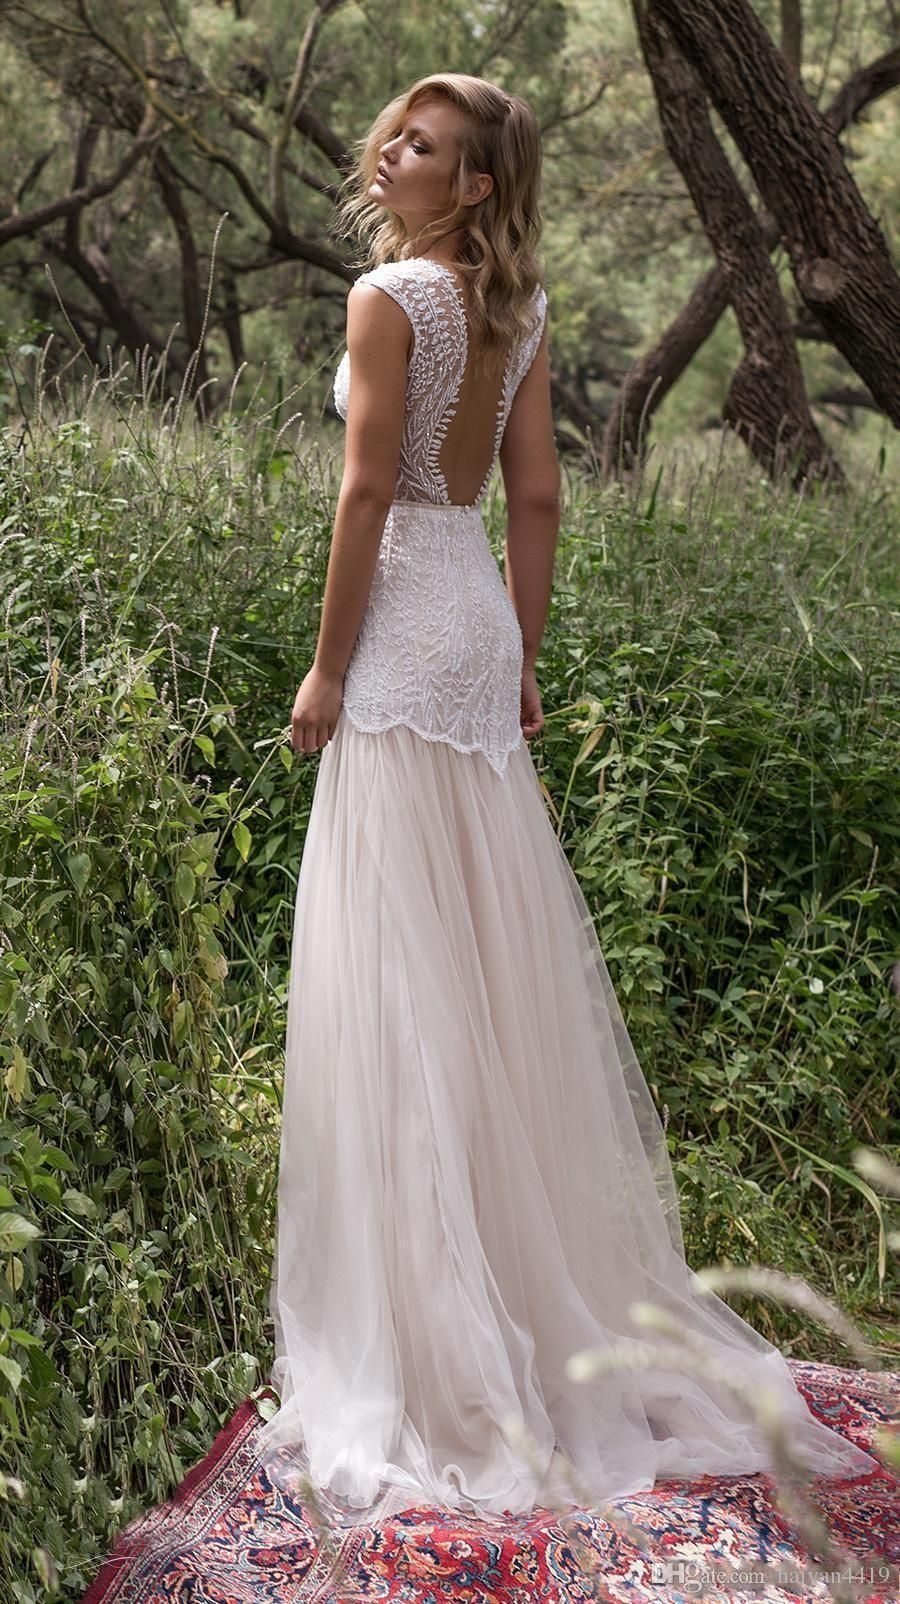 Limor Rosen 2018 Country Wedding Dresses Illusion V Neck Lace Appliques Crystal Beaded Sweep Train Backless Garden Beach Boho Bridal Gowns Wedding Dresses Wedding Dresses From Haiyan4419, $ 159.8 | Dhgate